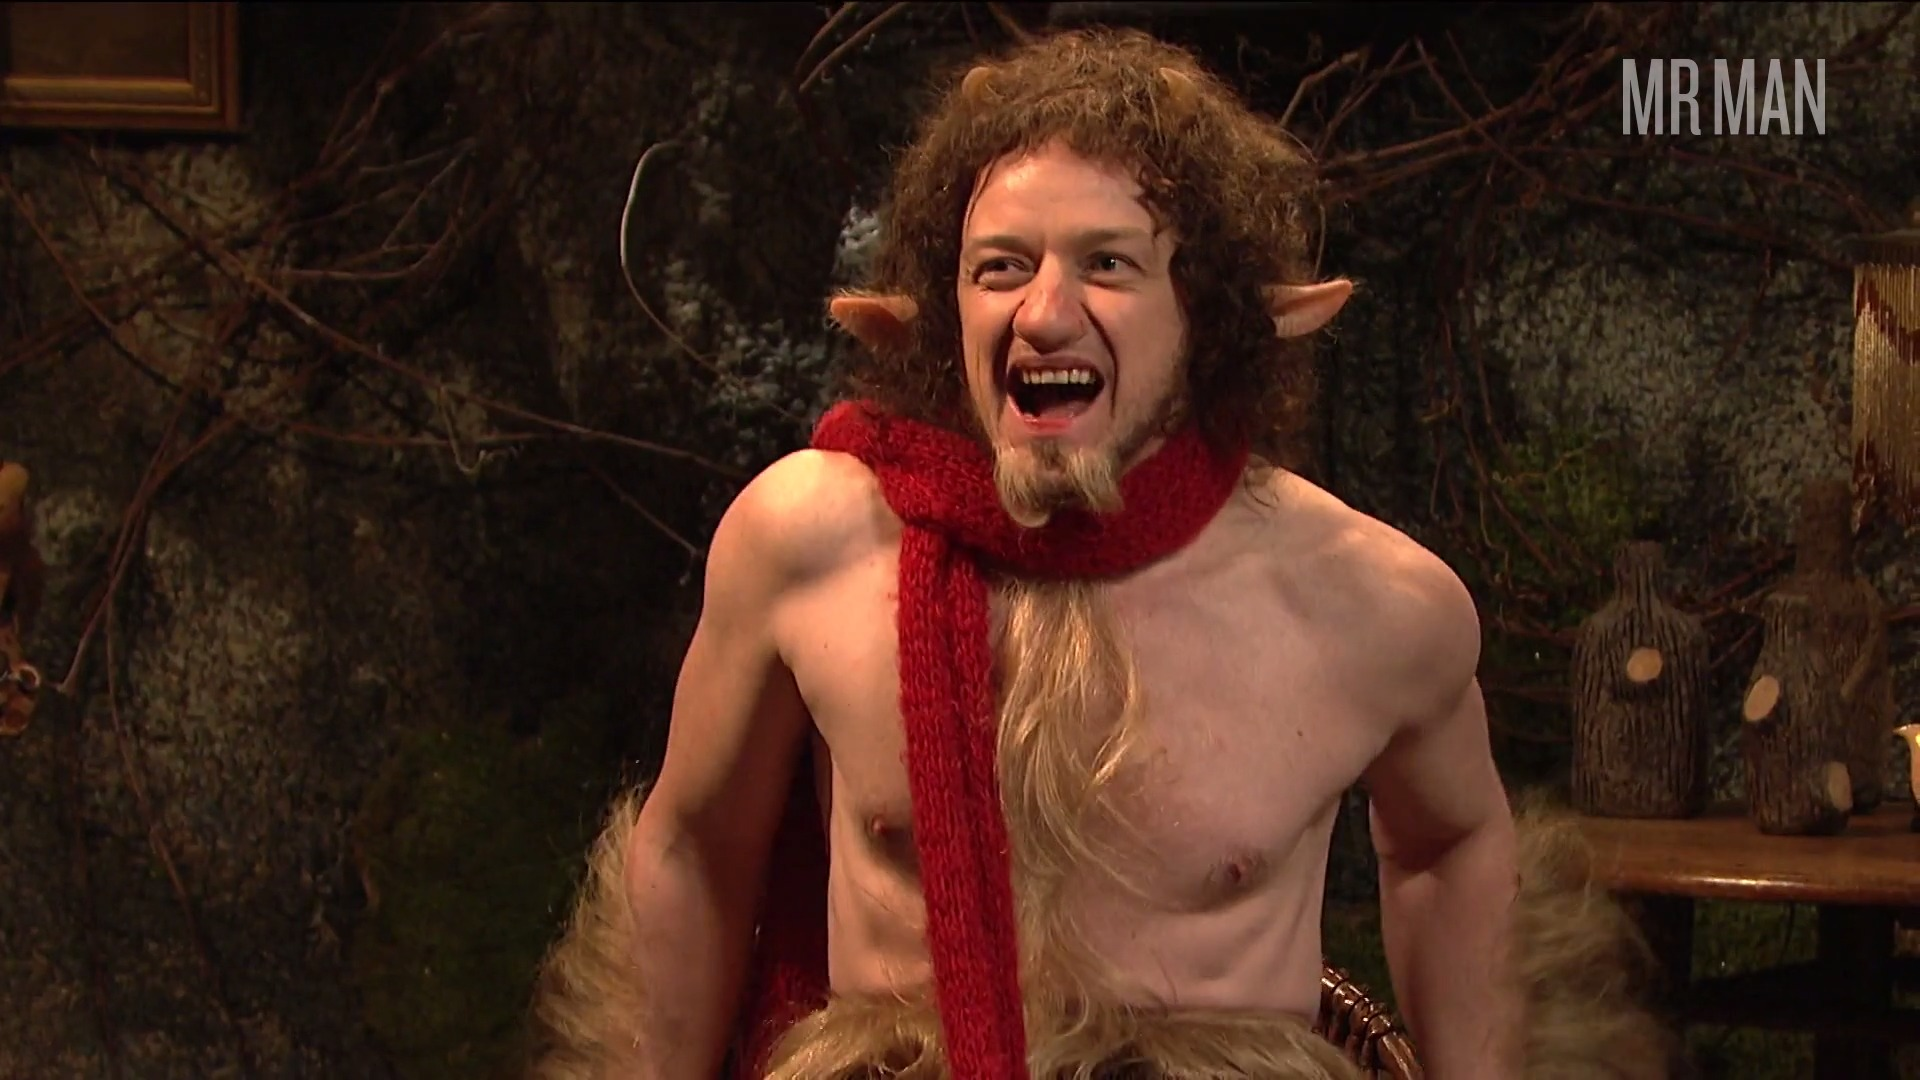 Saturdaynightlive 44x11 jamesmcavoy hd 01 frame 3 override